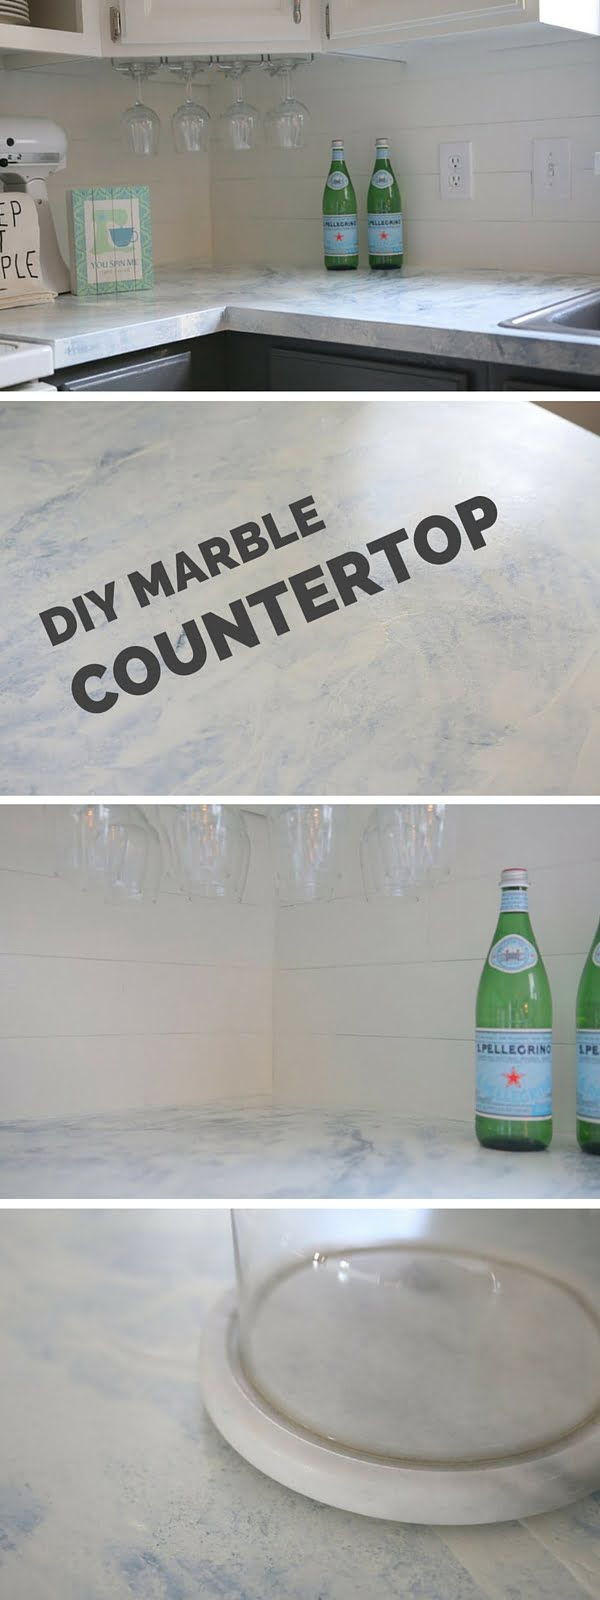 20 Easy Countertop DIY Tutorials to Revamp Your Kitchen - Check out the tutorial: DIY Marble Countertop